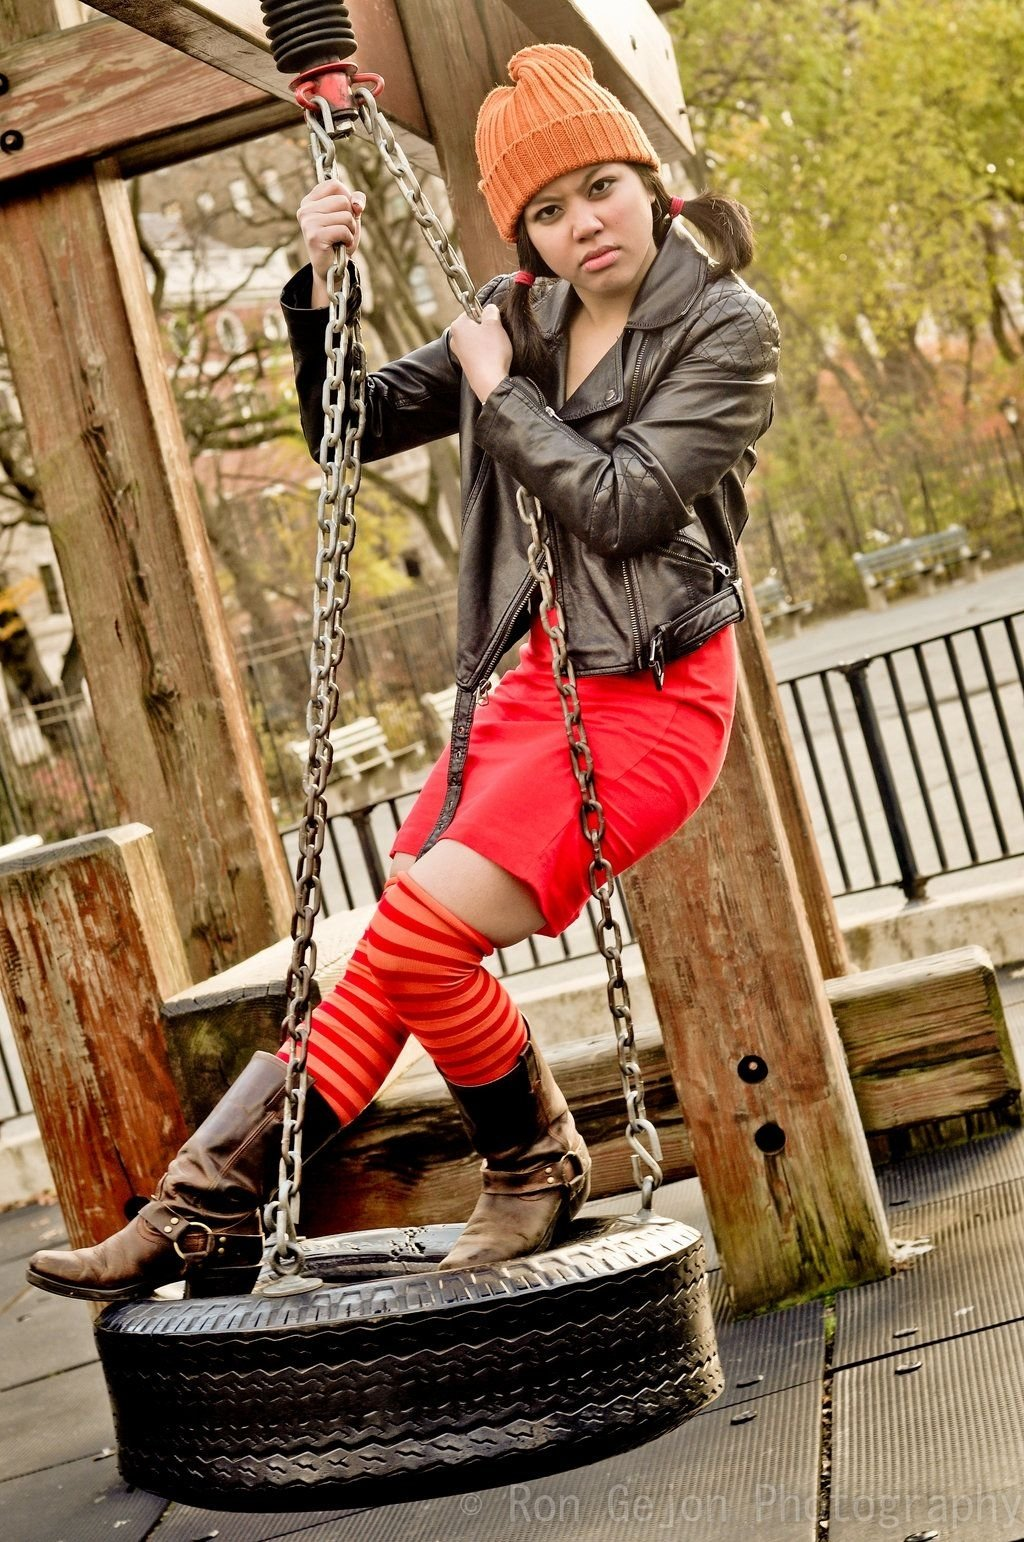 10 Cute Easy Cosplay Ideas For Girls spinelli recess cosplayrongejon on deviantart cosplay 2021